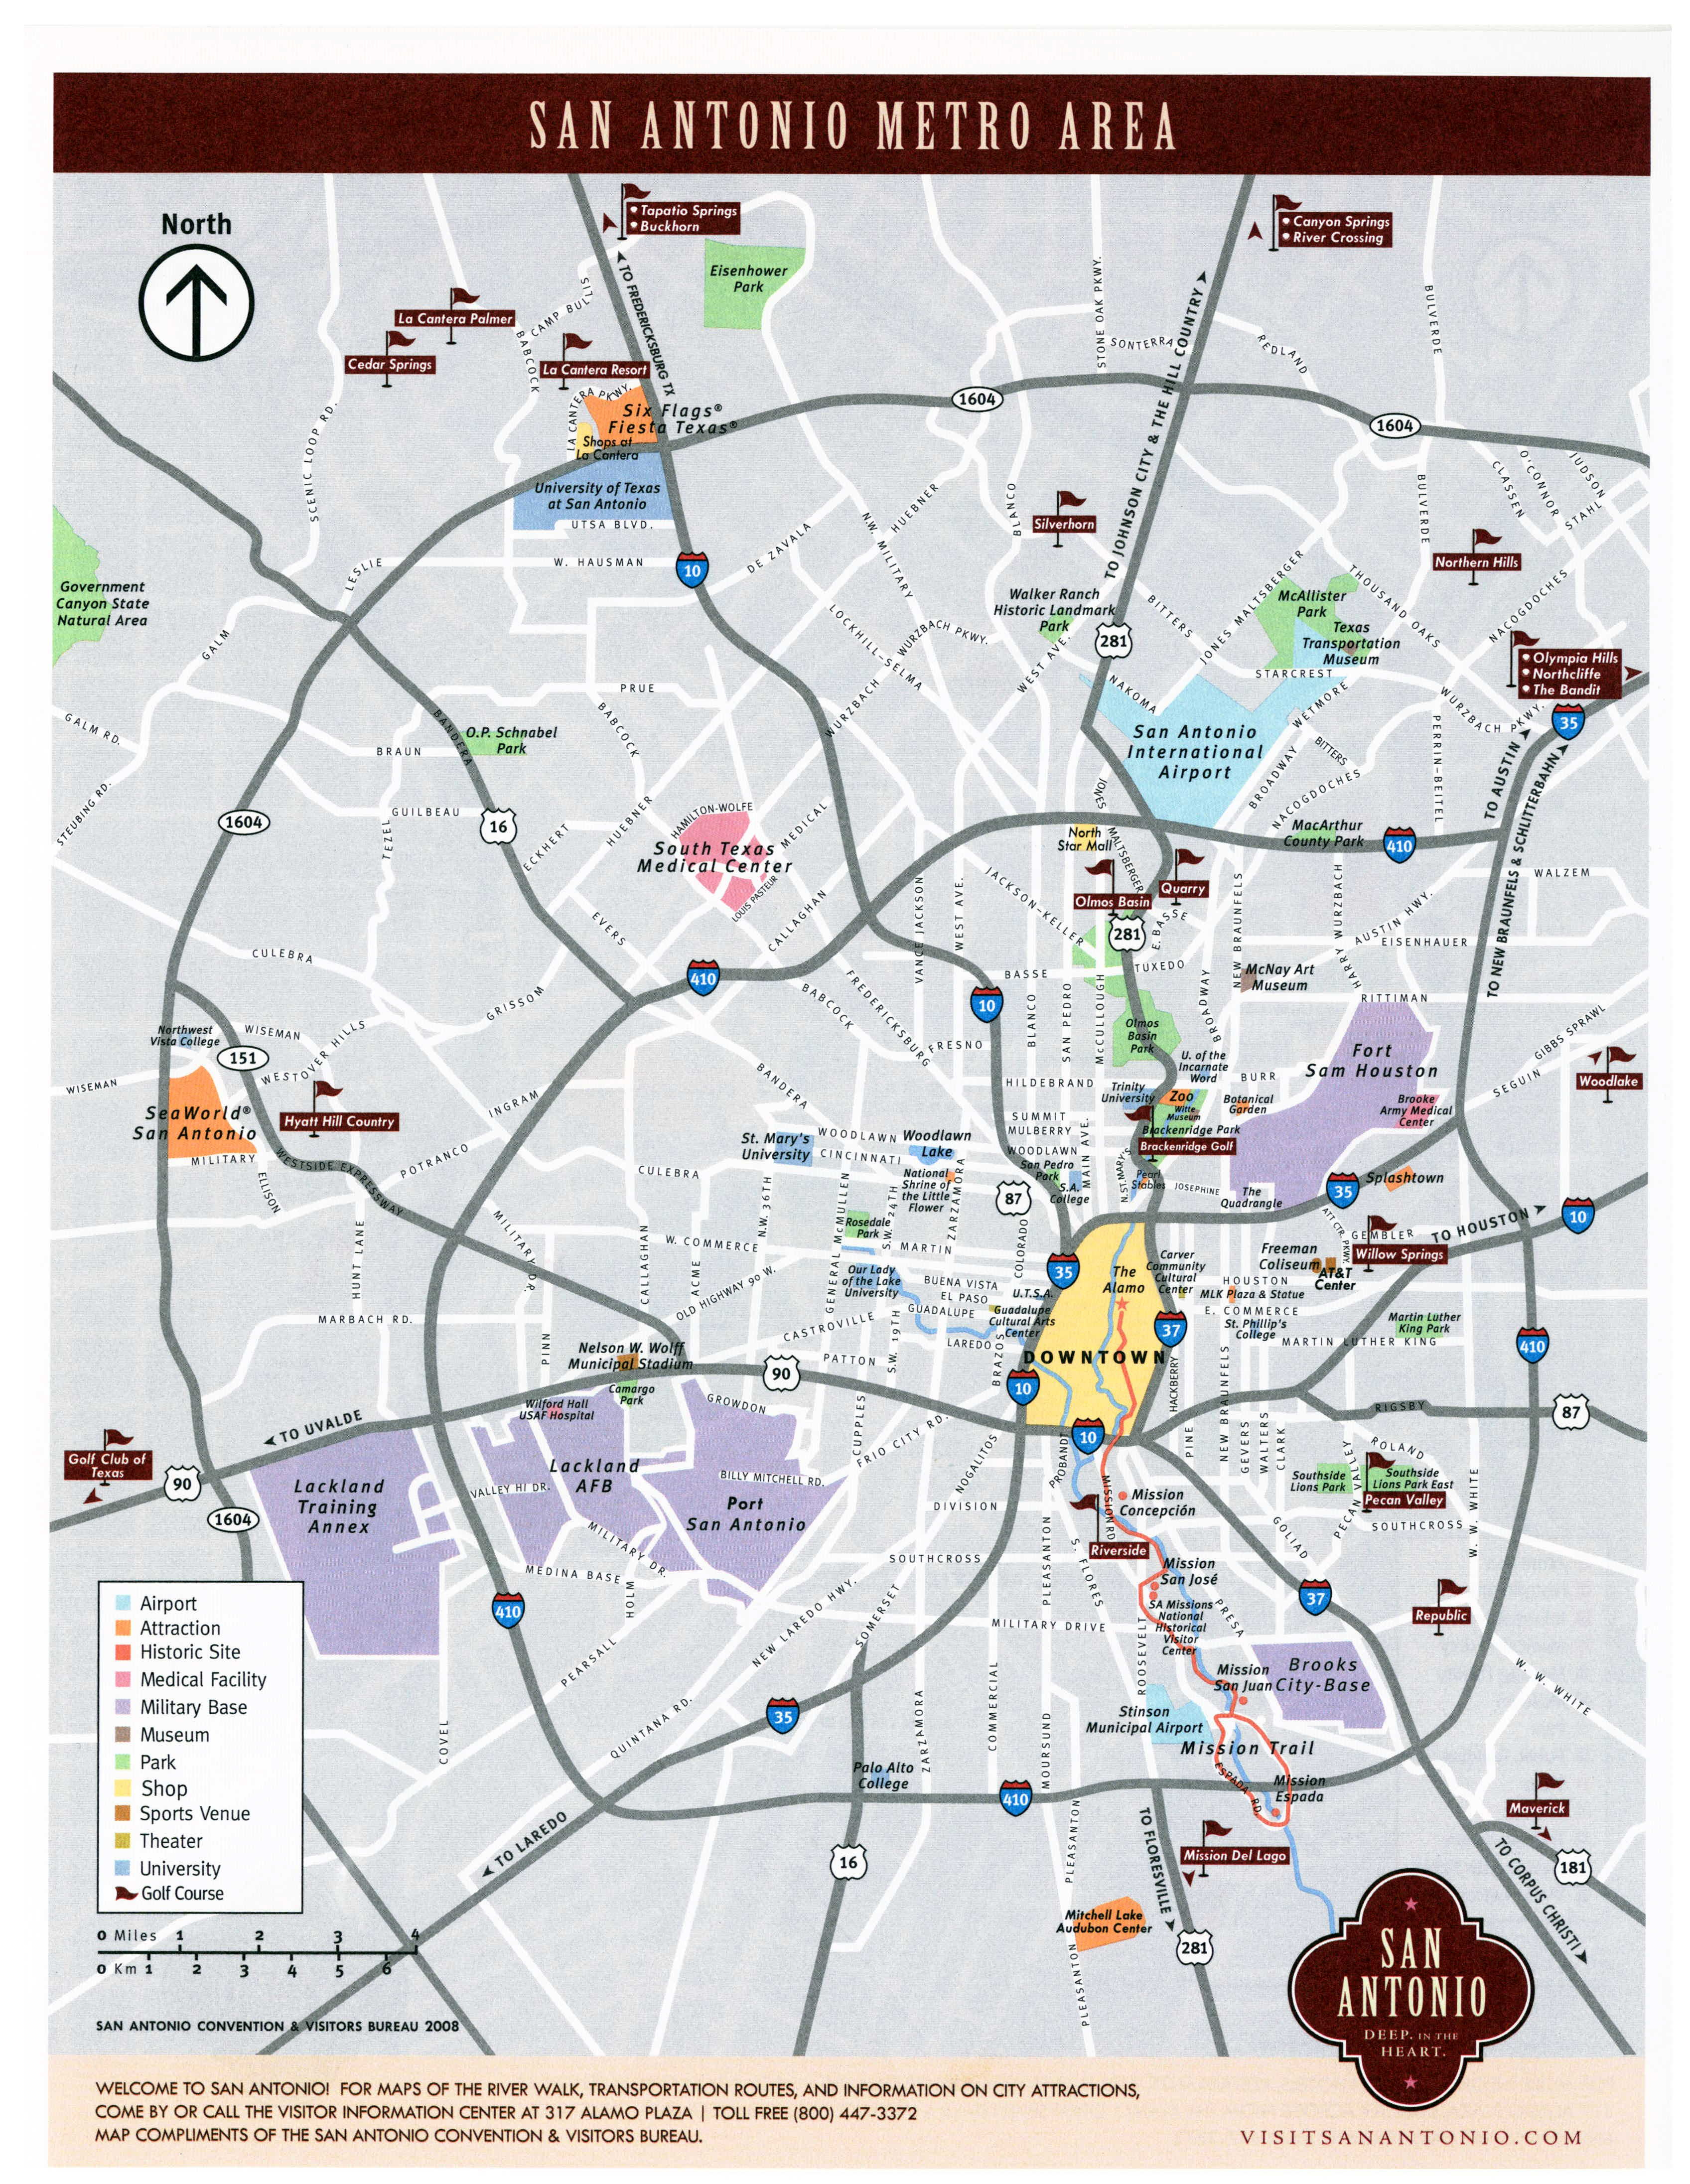 Large San Antonio Maps For Free Download And Print | High-Resolution - Detailed Map Of San Antonio Texas